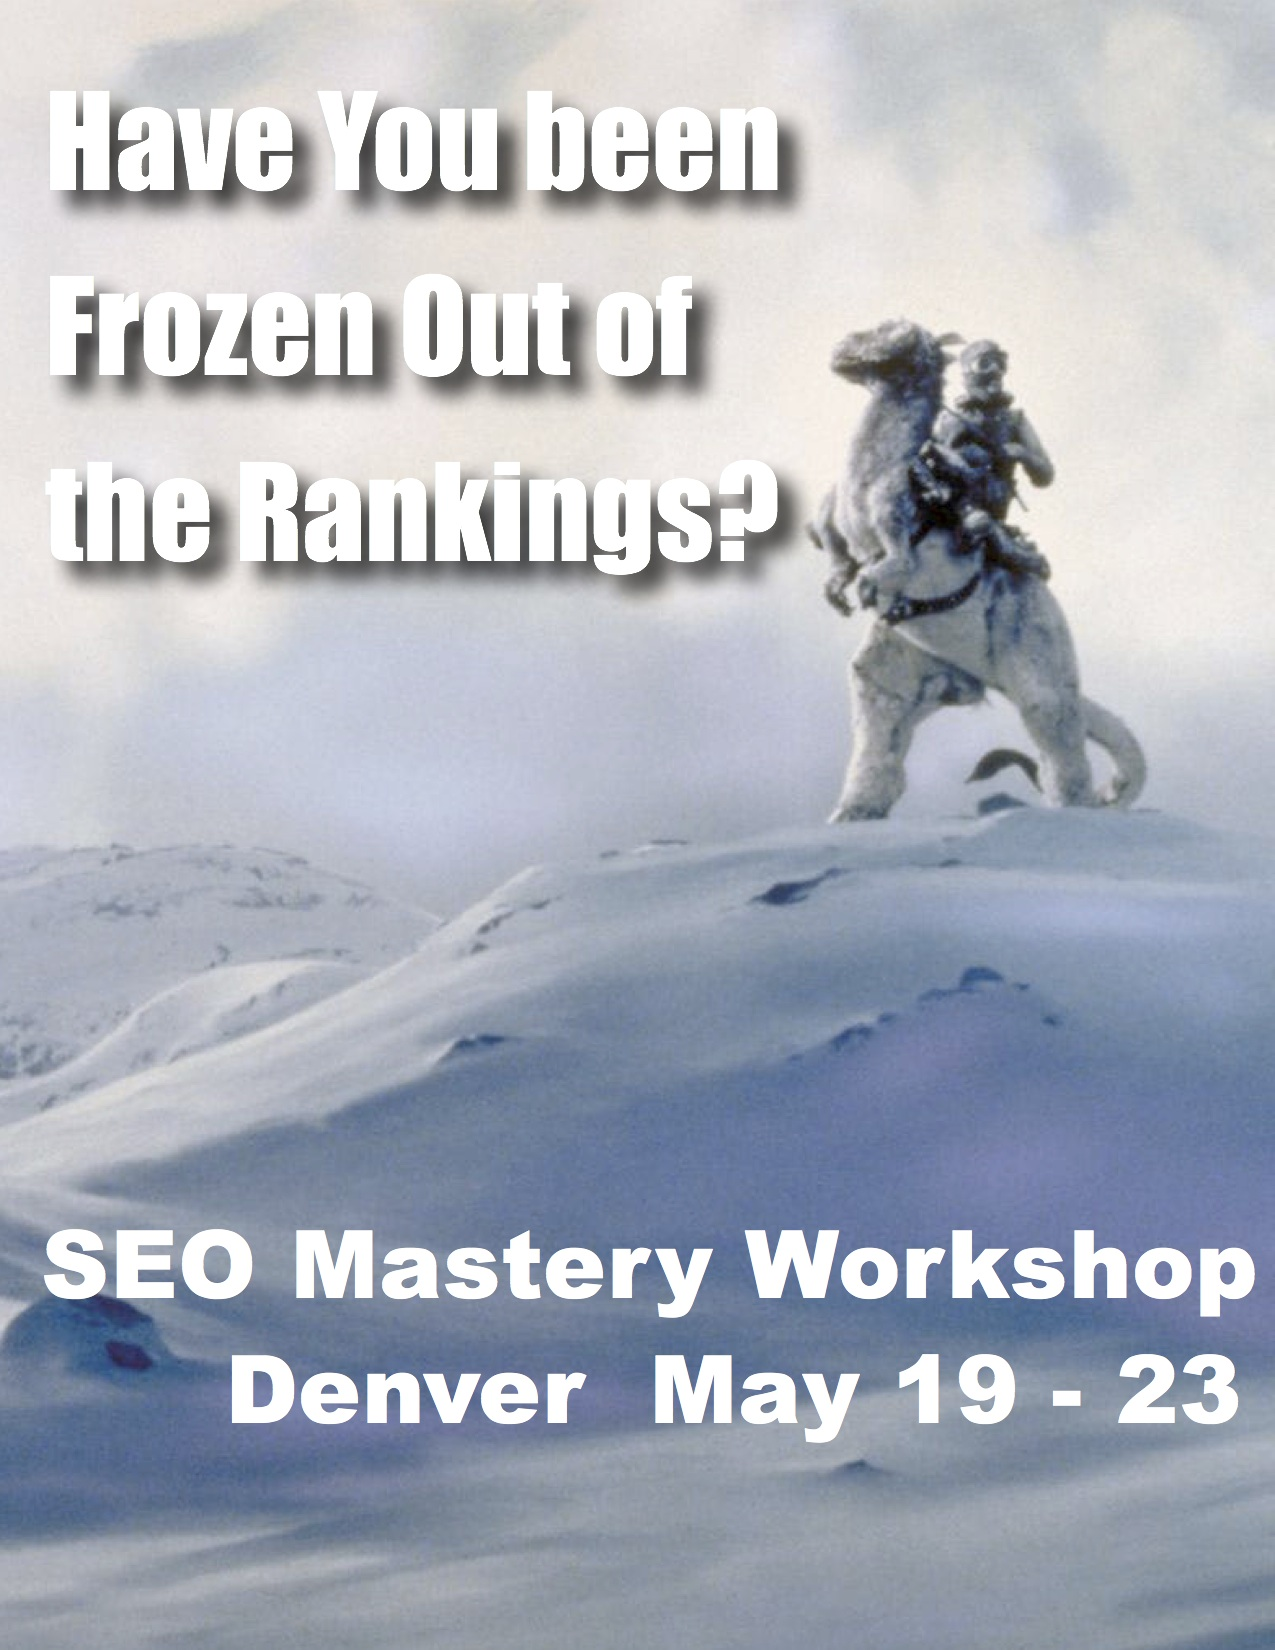 http://register.rockymountainsearchacademy.com/denver-seo-workshop/